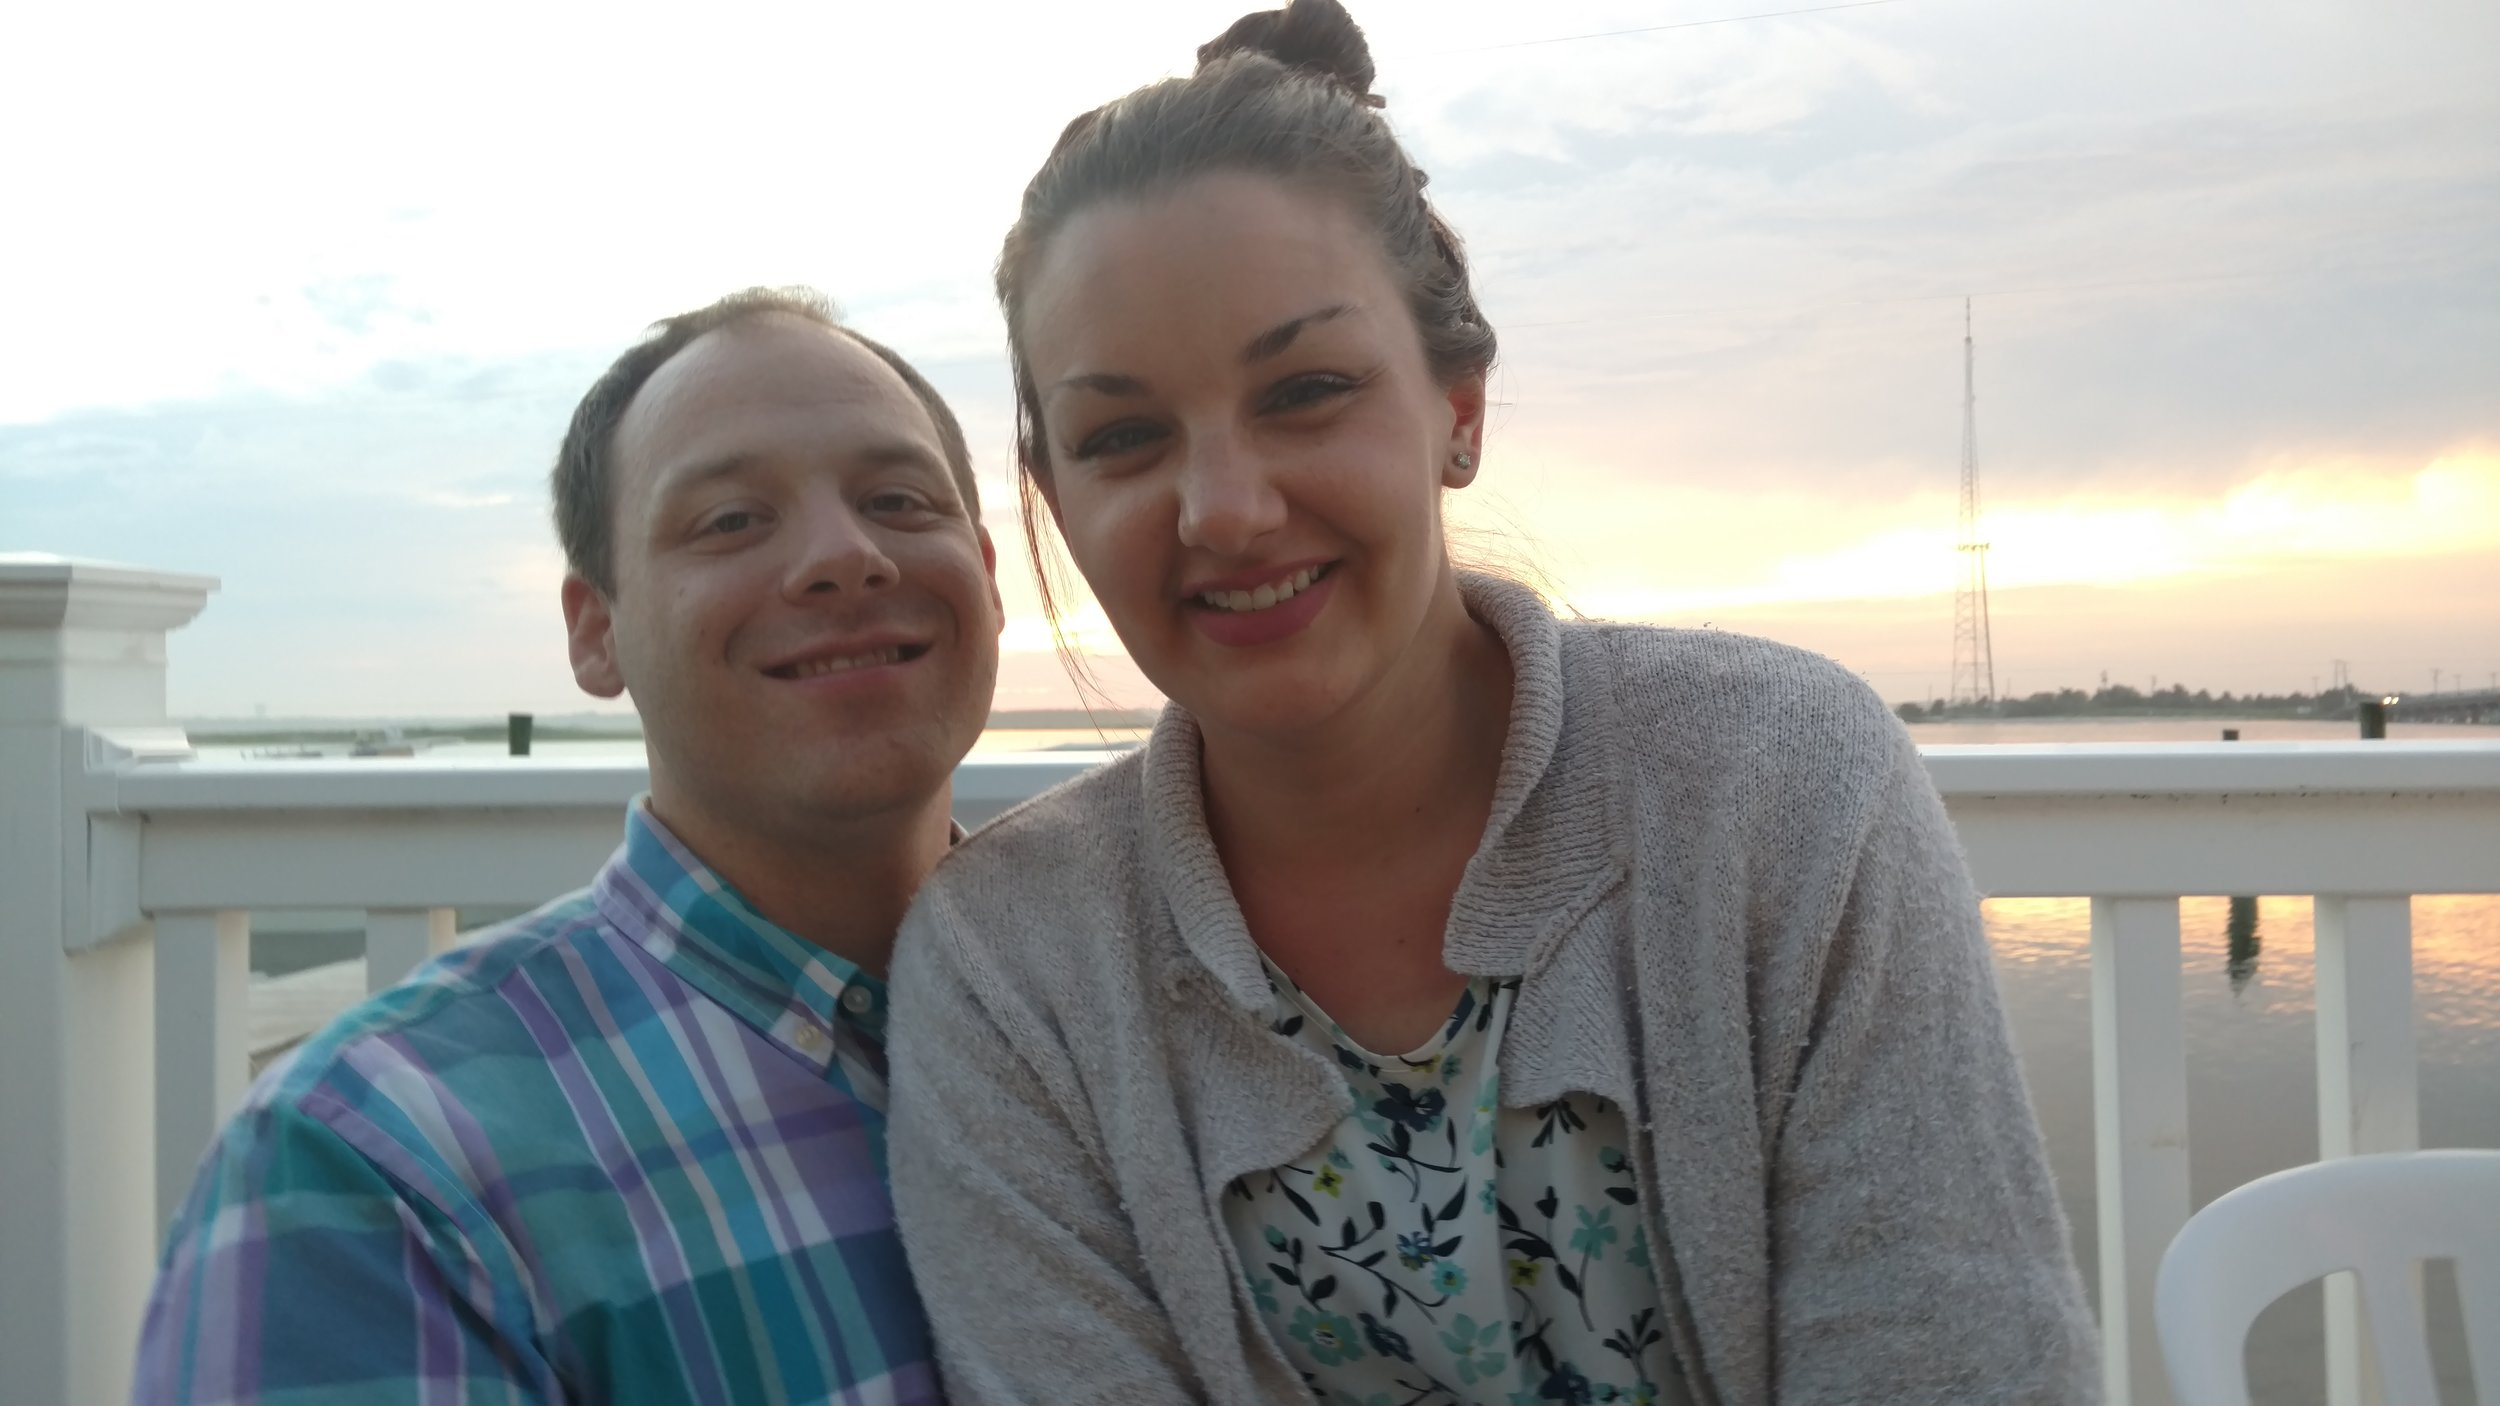 - Our infertility treatment hopes were dashed, but our love for one another has kept us strong.